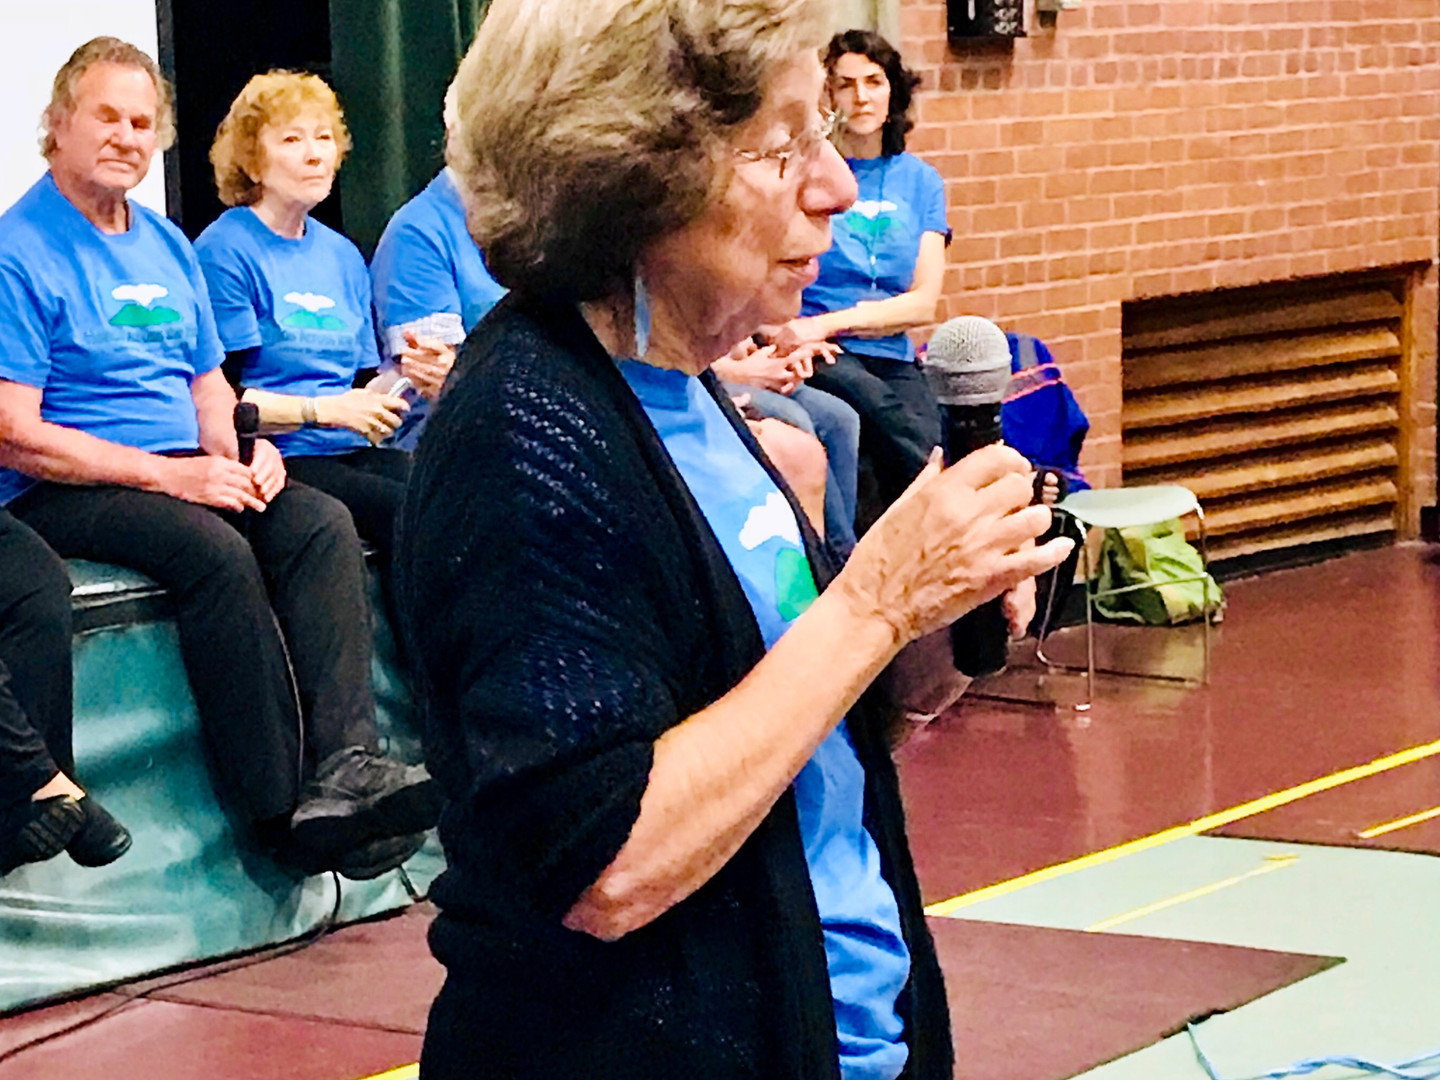 Paula Green fields questions at the May 15th Reflections community meeting